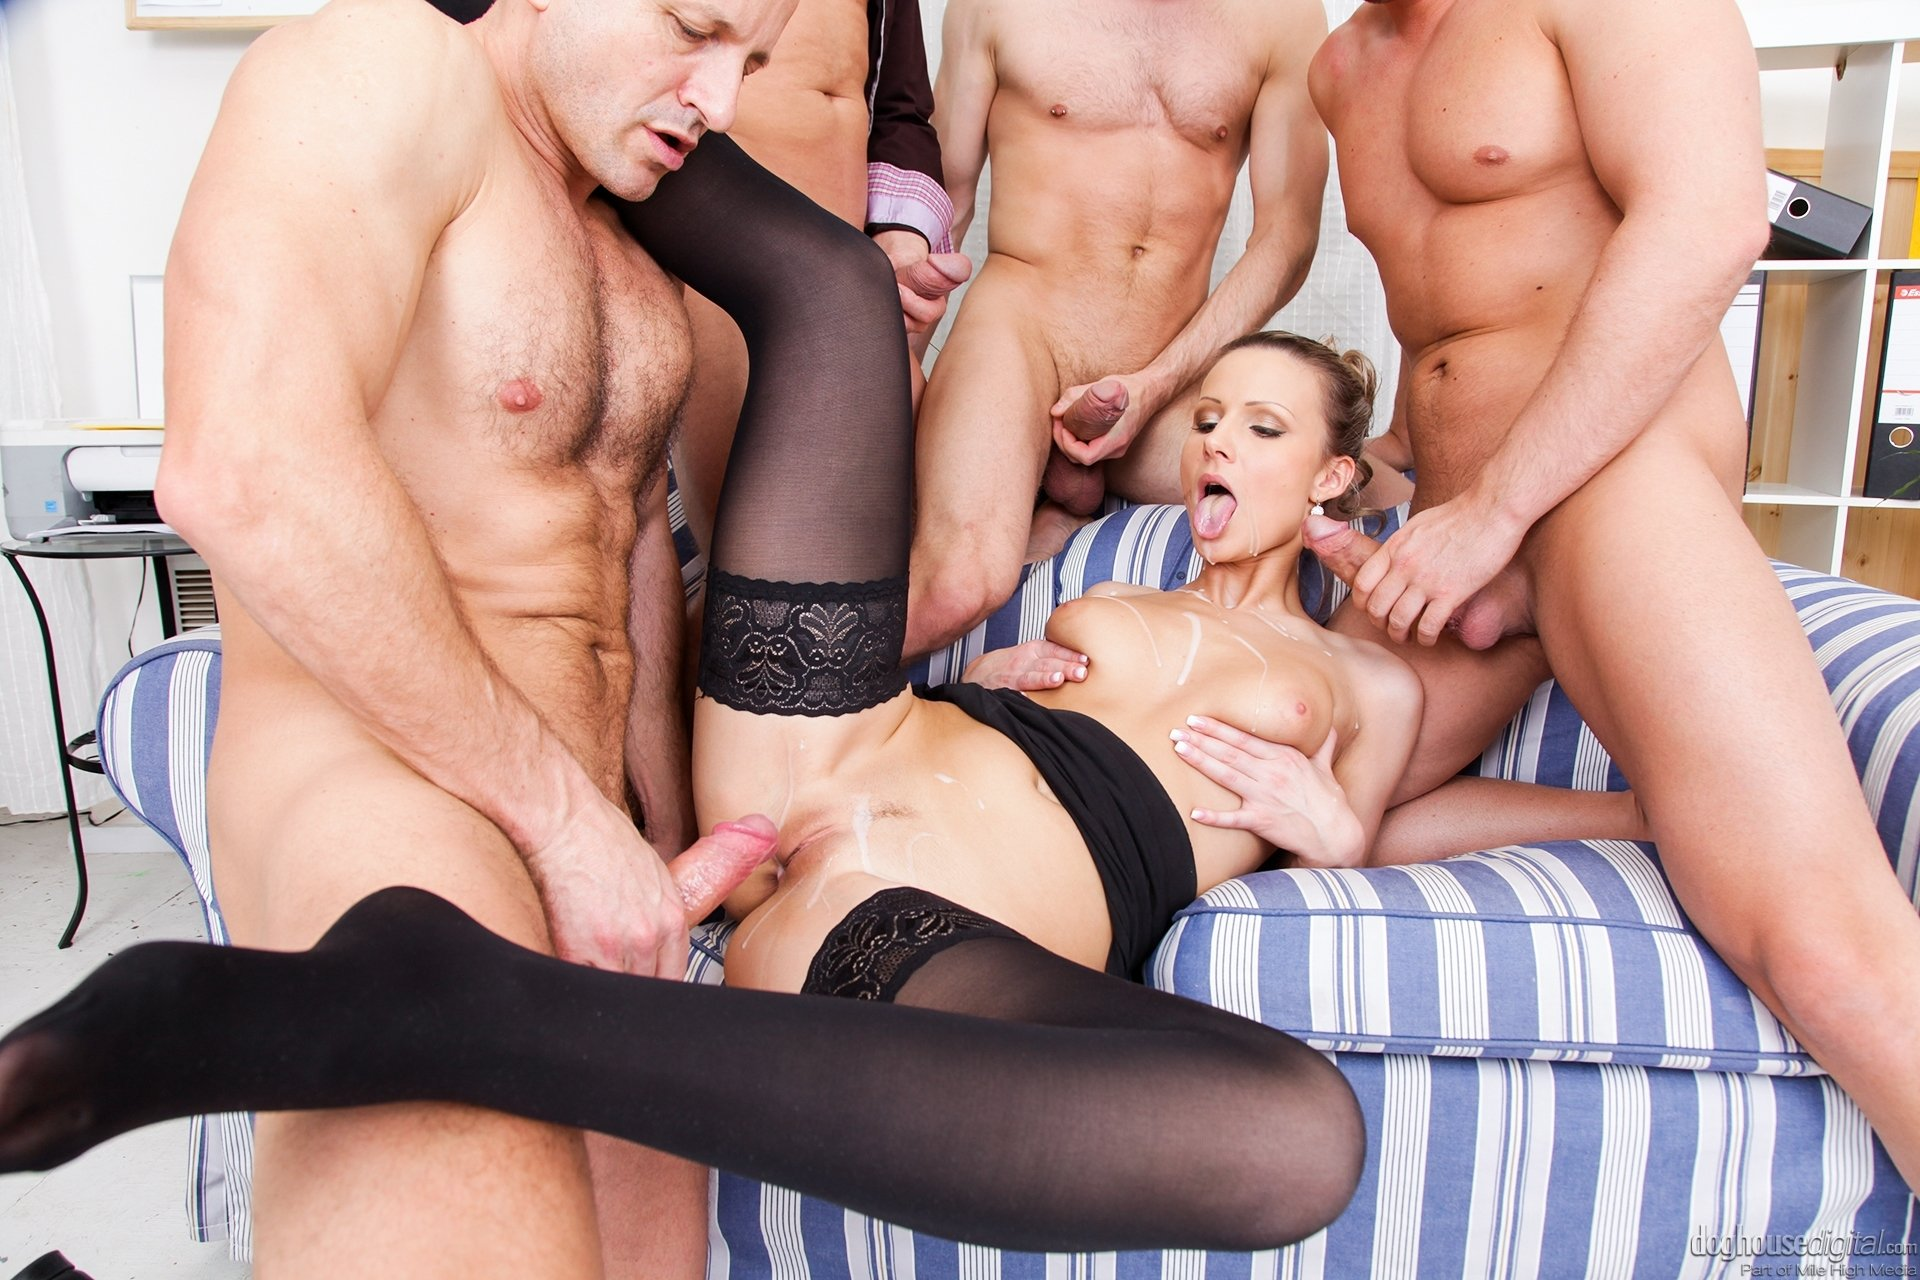 Forced to watch wife gangbang stories 40year old naked beautiful ladies kitchen anal videos